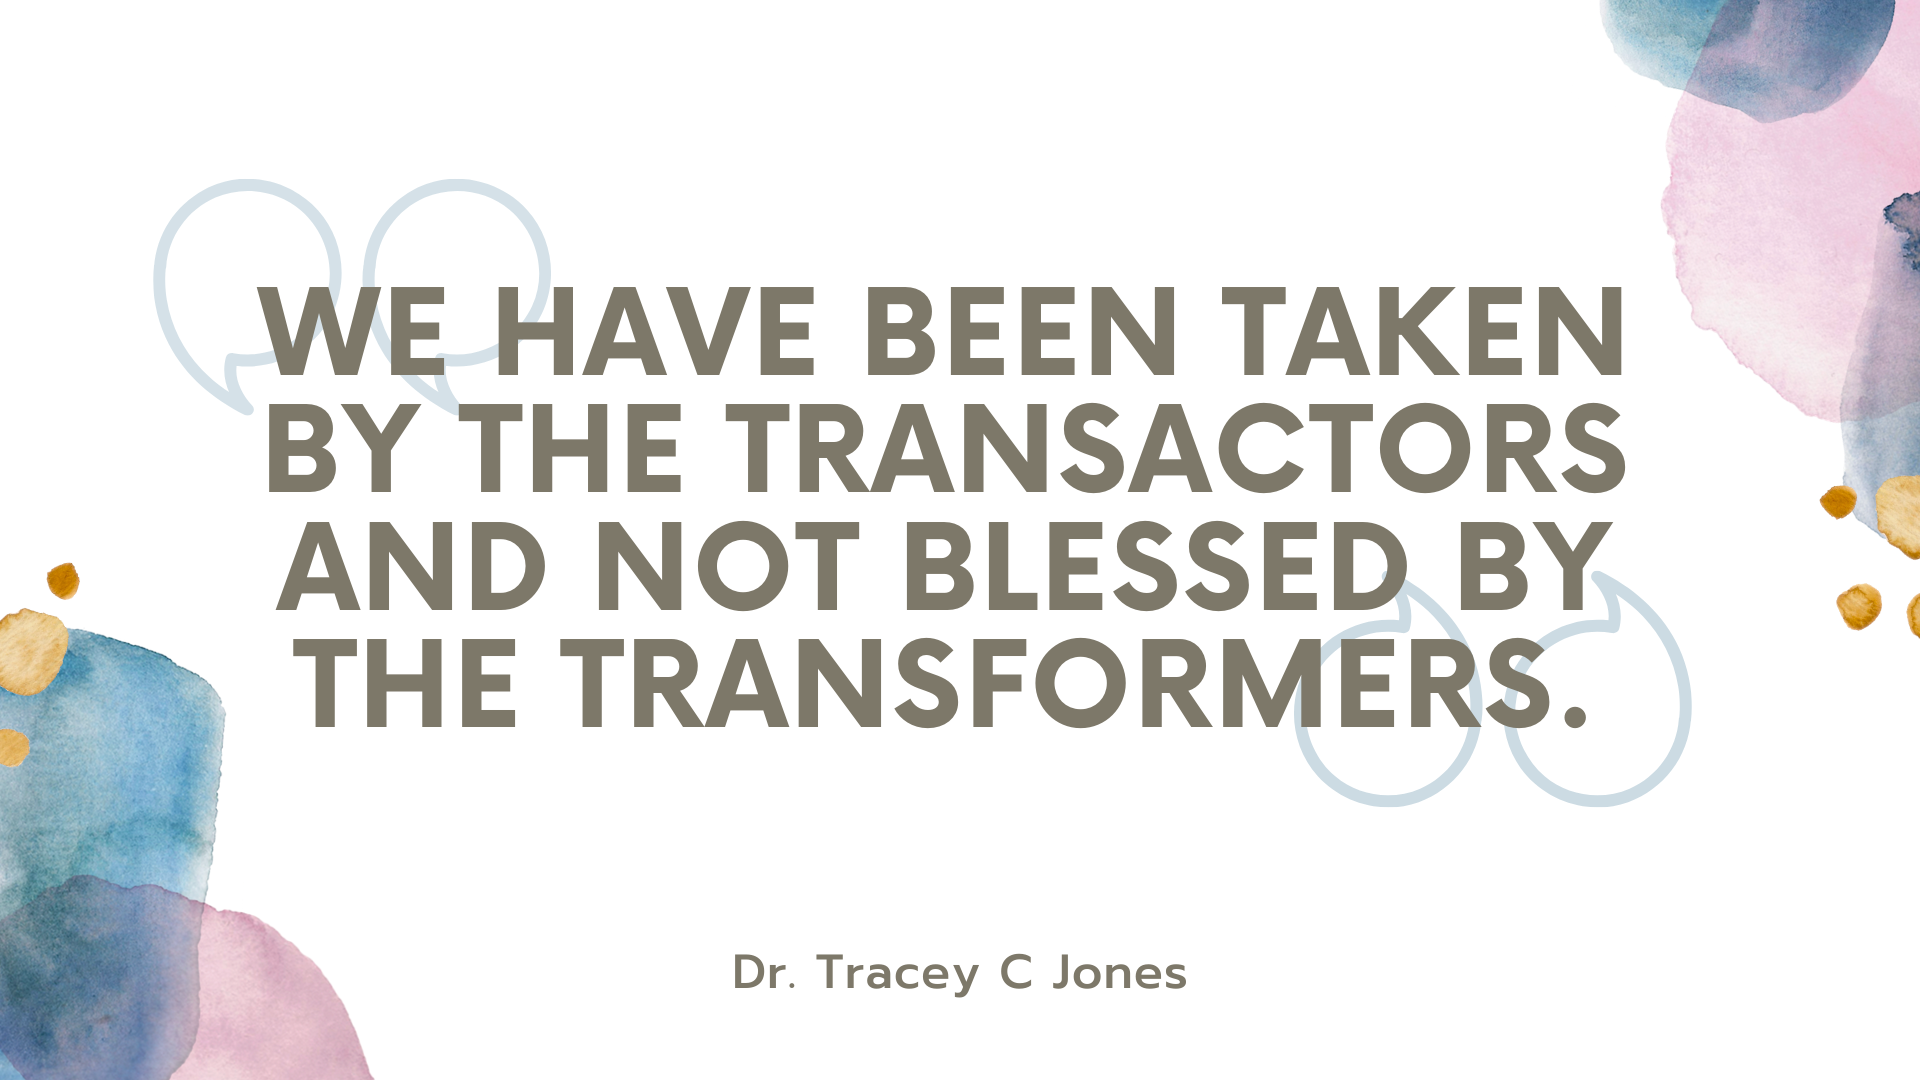 We have been taken by the transactors and not blessed by the transformers. Dr Tracey C Jones